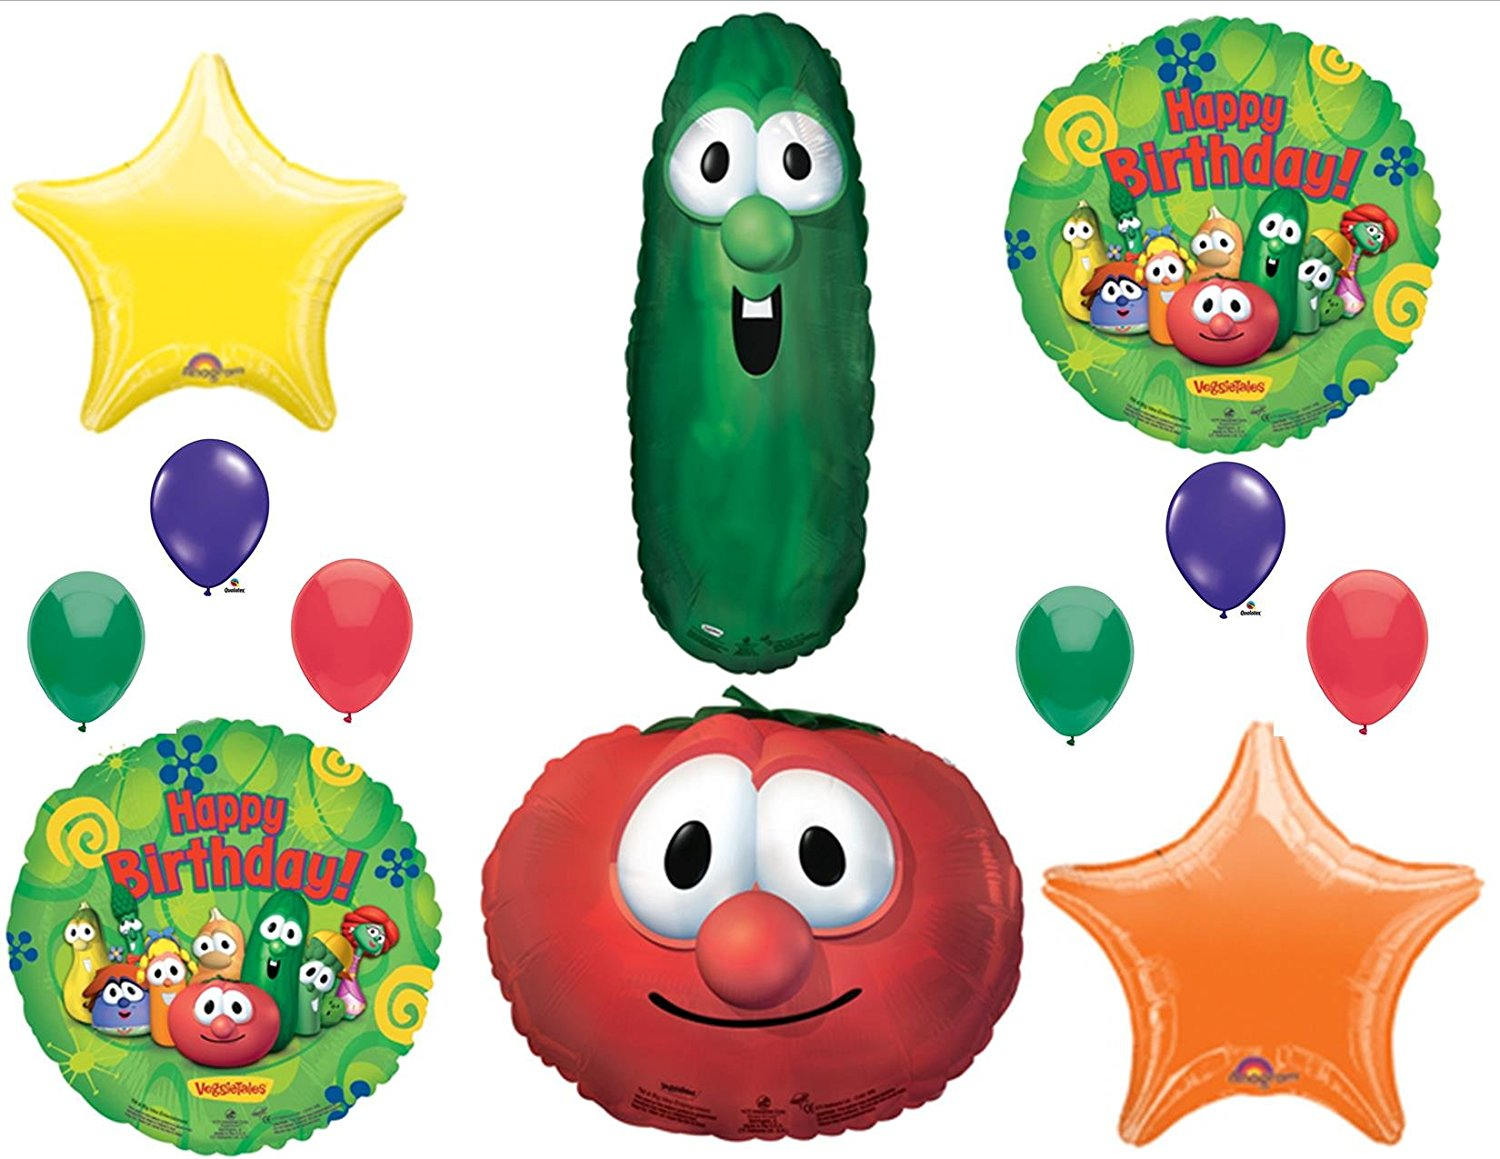 VEGGIE TALES LARRY CUCUMBER & BOB TOMATOE BIRTHDAY PARTY Balloons Decorations Supplies, Veggie Tales 12 Piece... by